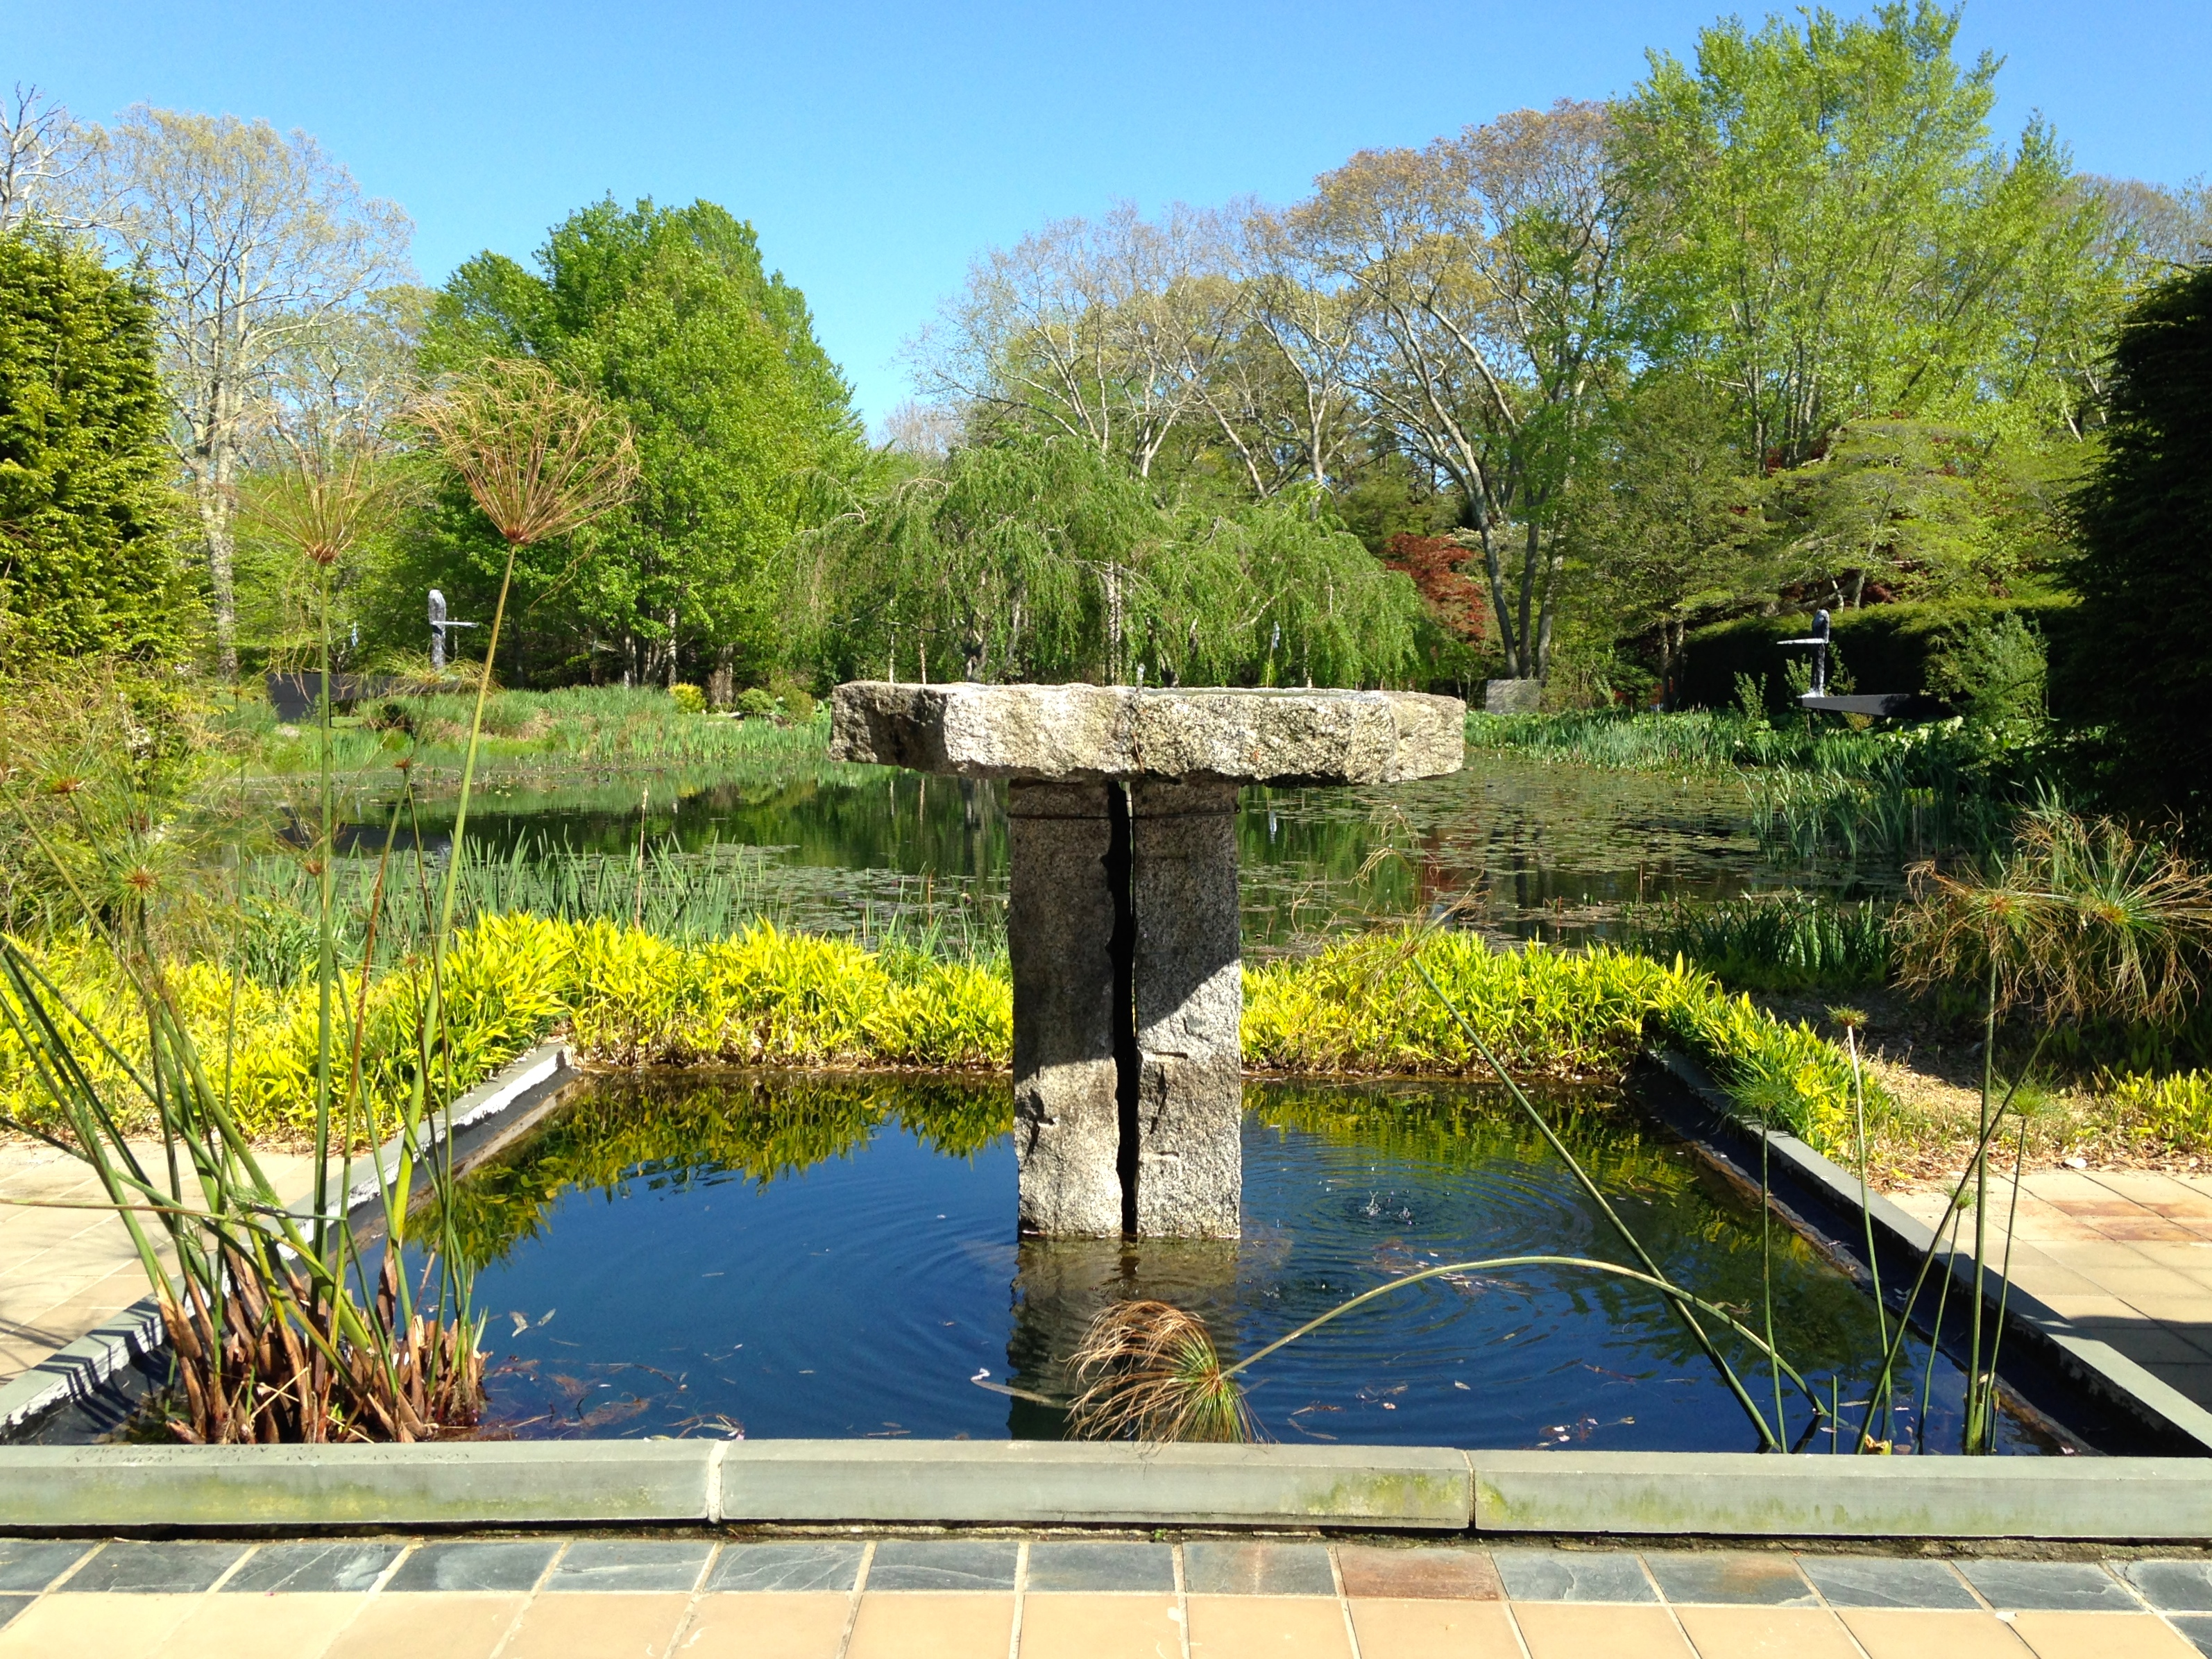 Kdhamptons garden diary enter the longhouse reserve for Garden design instagram